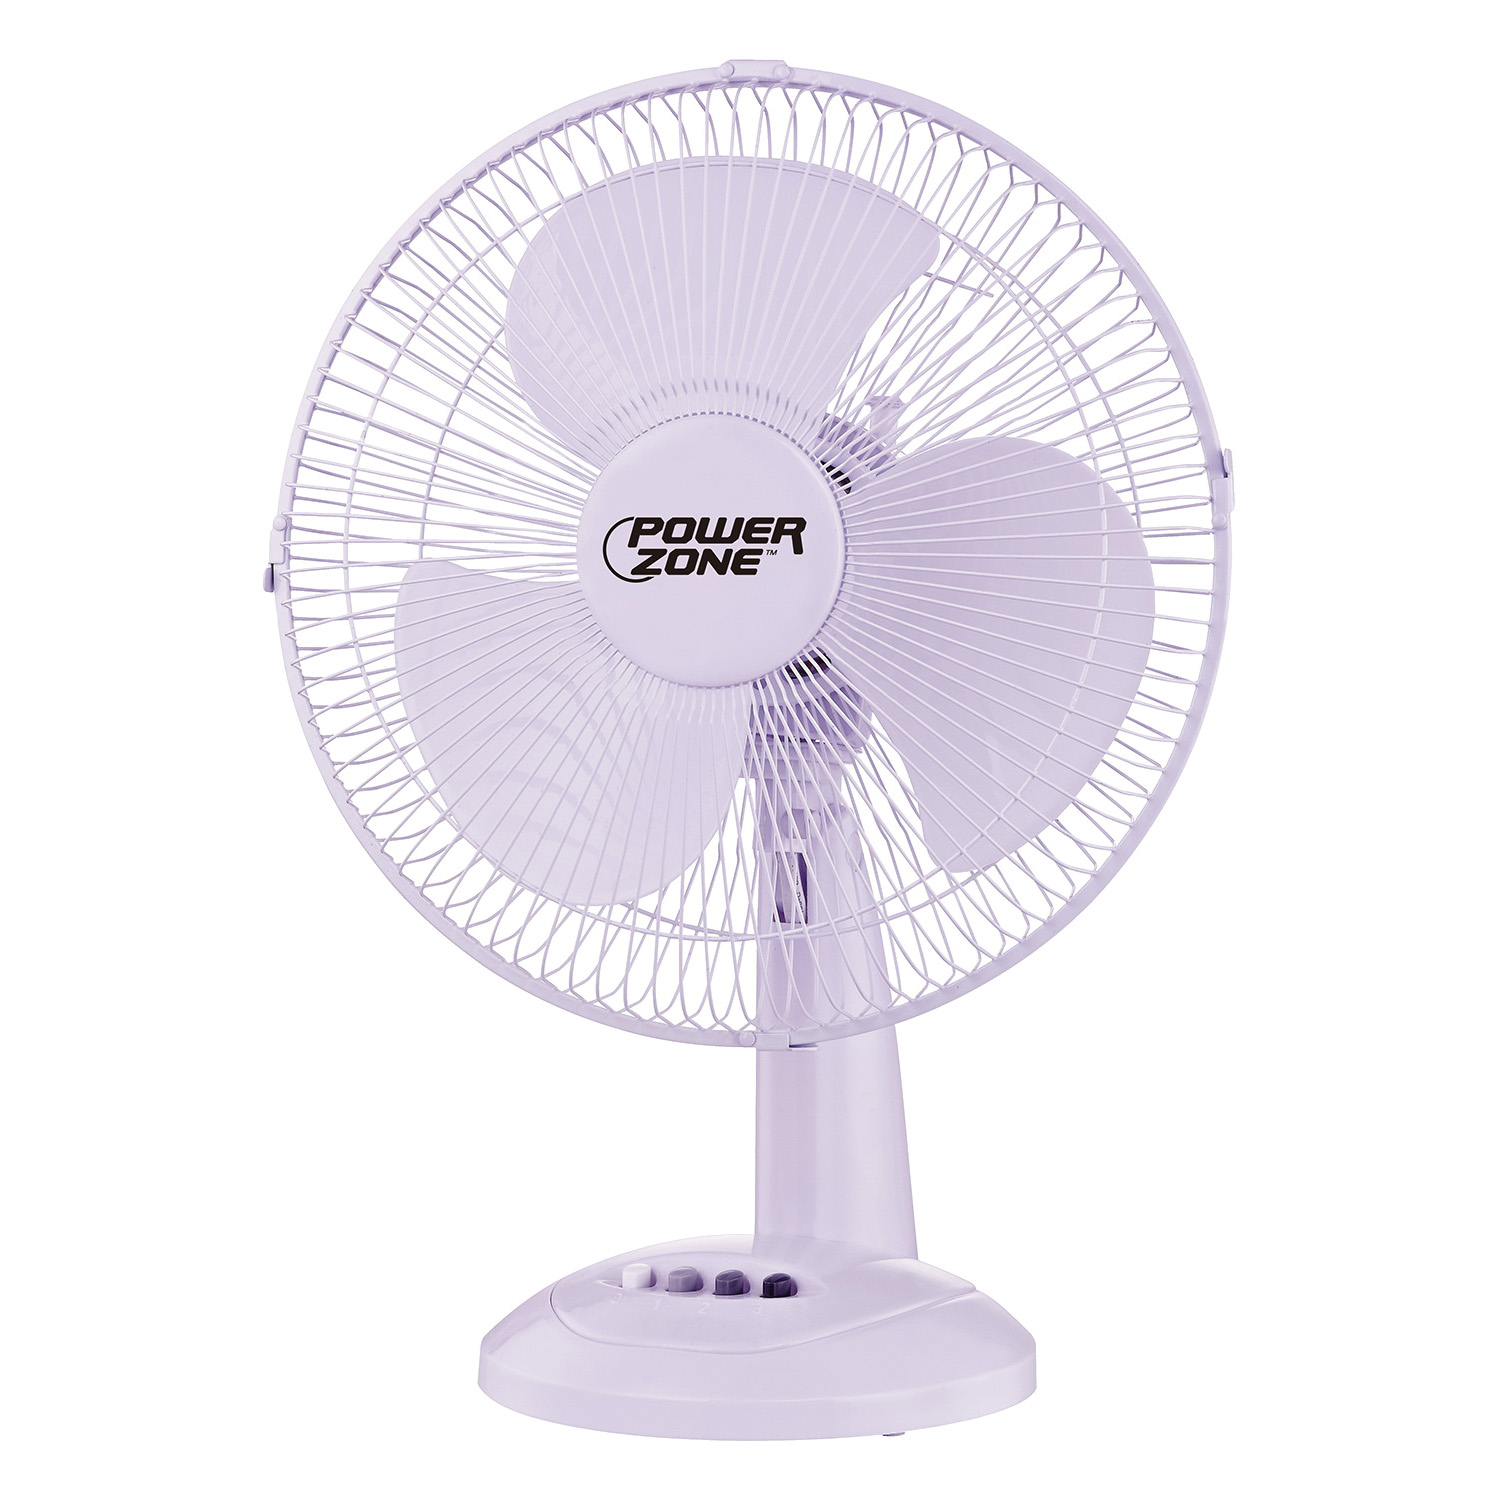 Picture of PowerZone FT-30 Oscillating Table Fan, 120 V, 12 in Dia Blade, 3-Blade, 3-Speed, 72 in L Cord, White